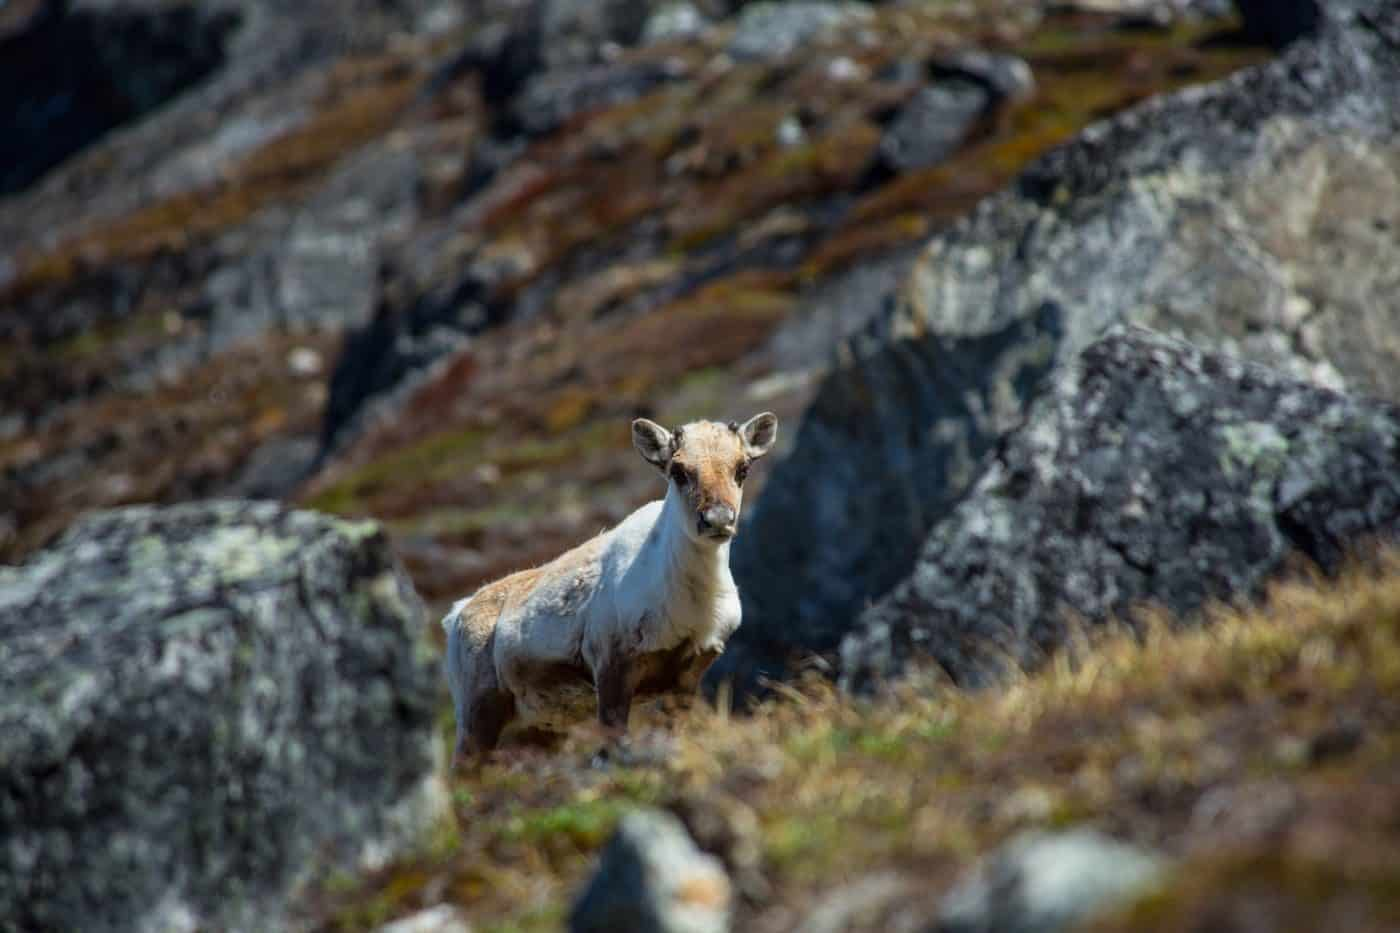 Summer reindeer in Greenland. Photo by Tikki Geisler